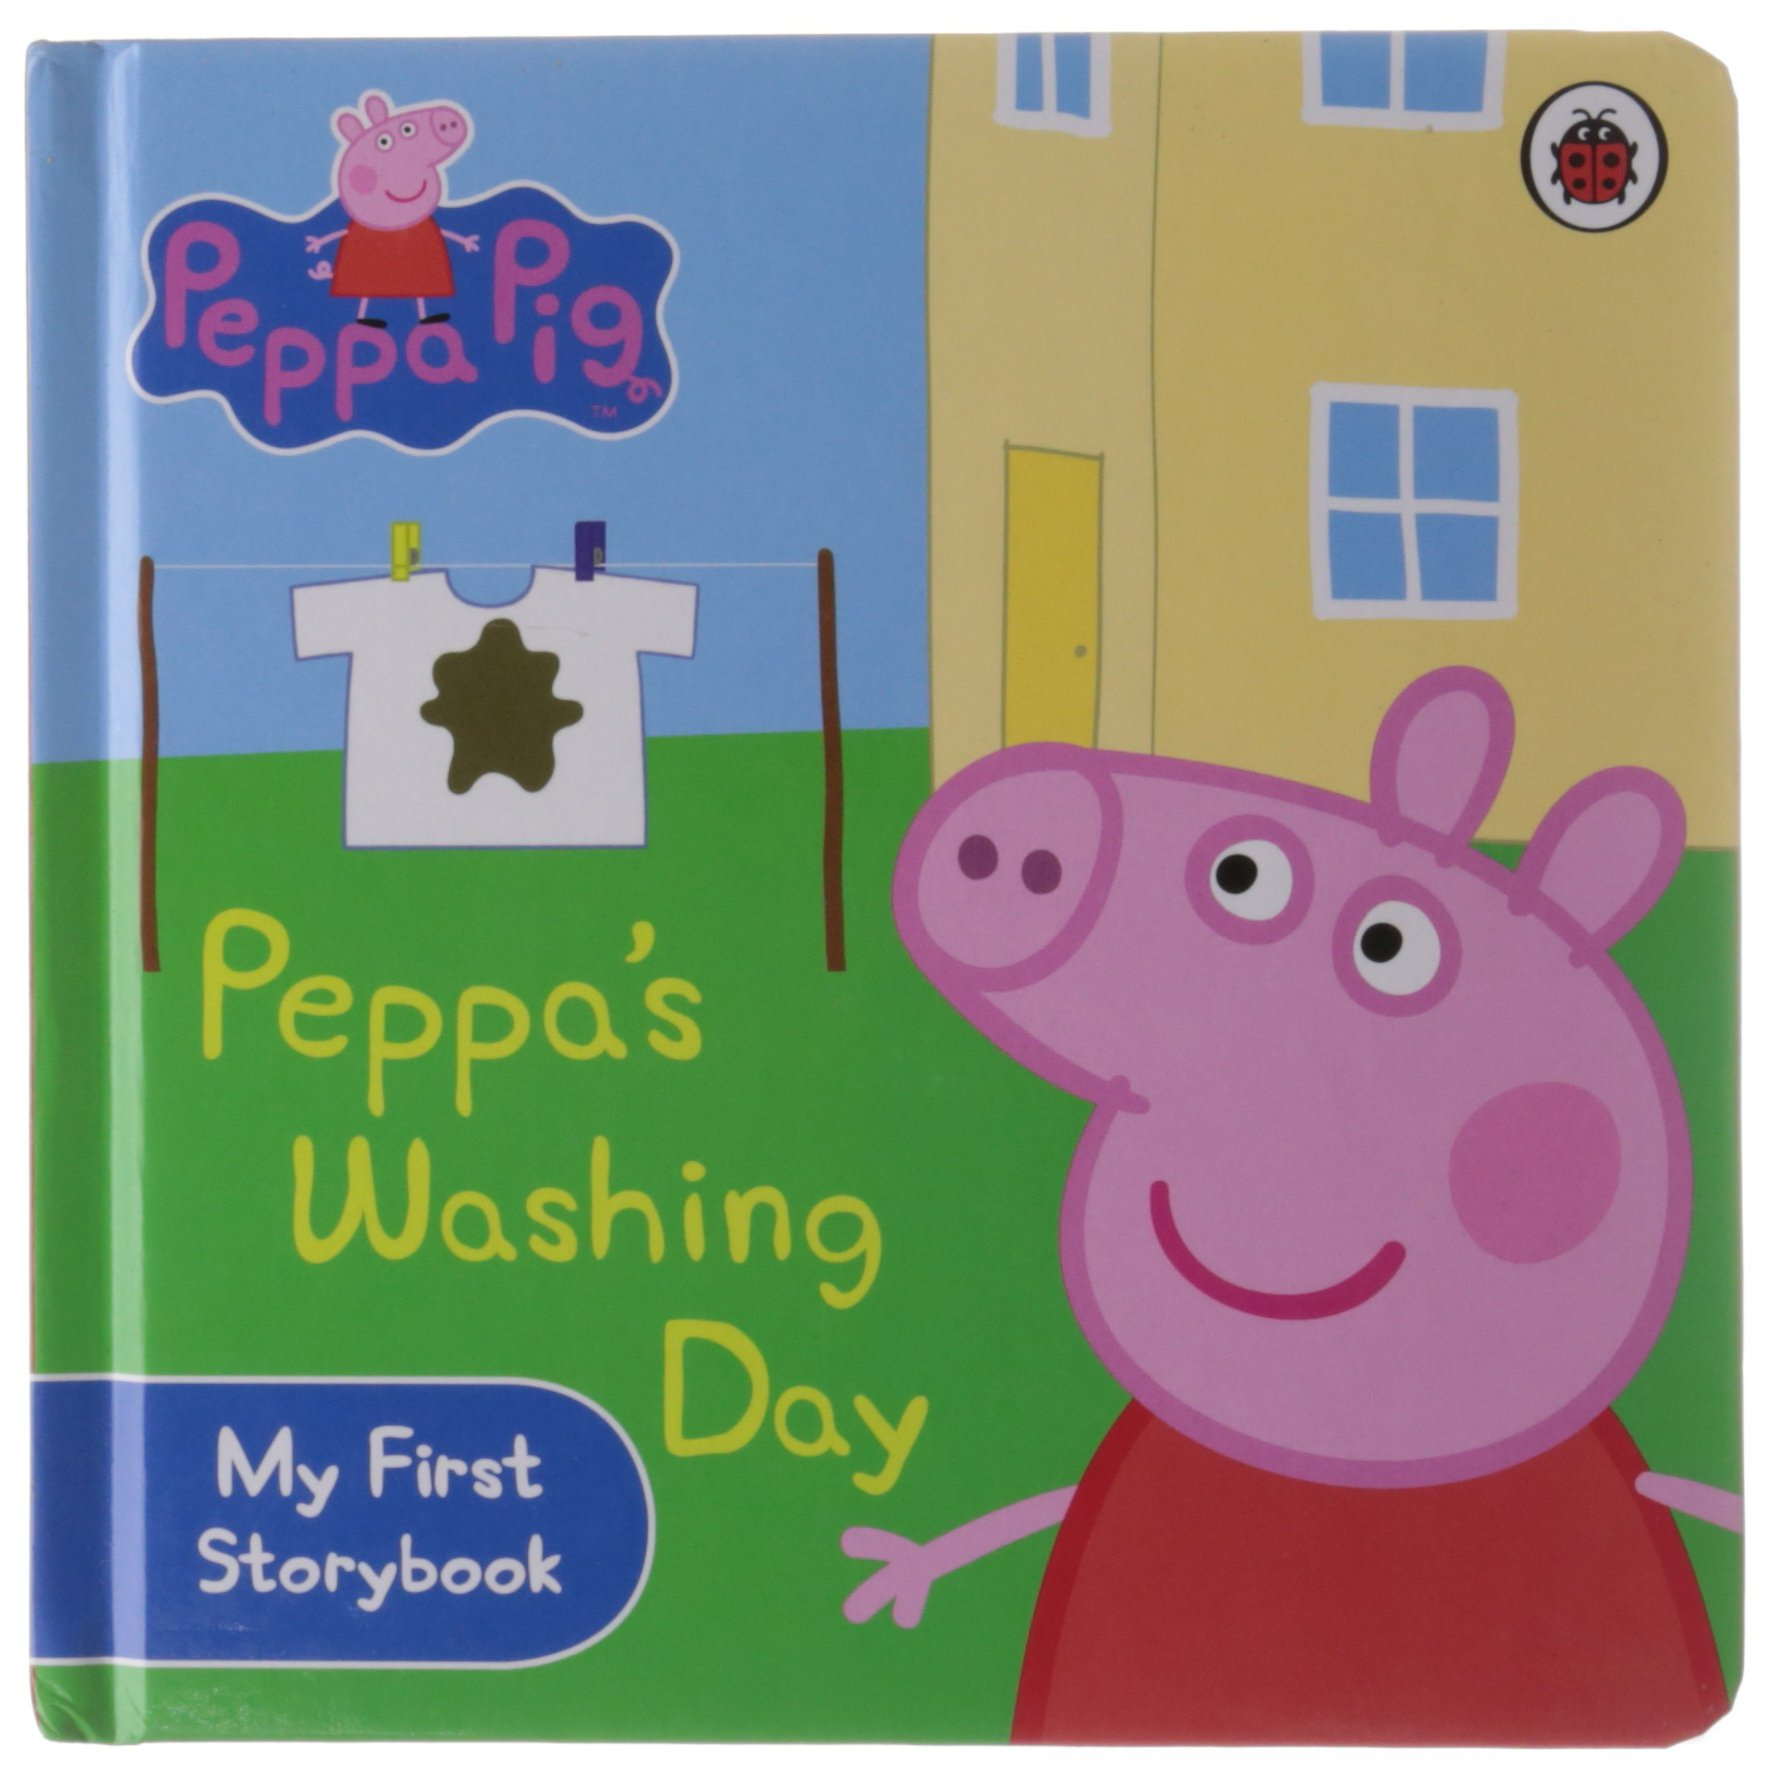 Peppa Pig Washing Peppa Pig Peppa's Washing